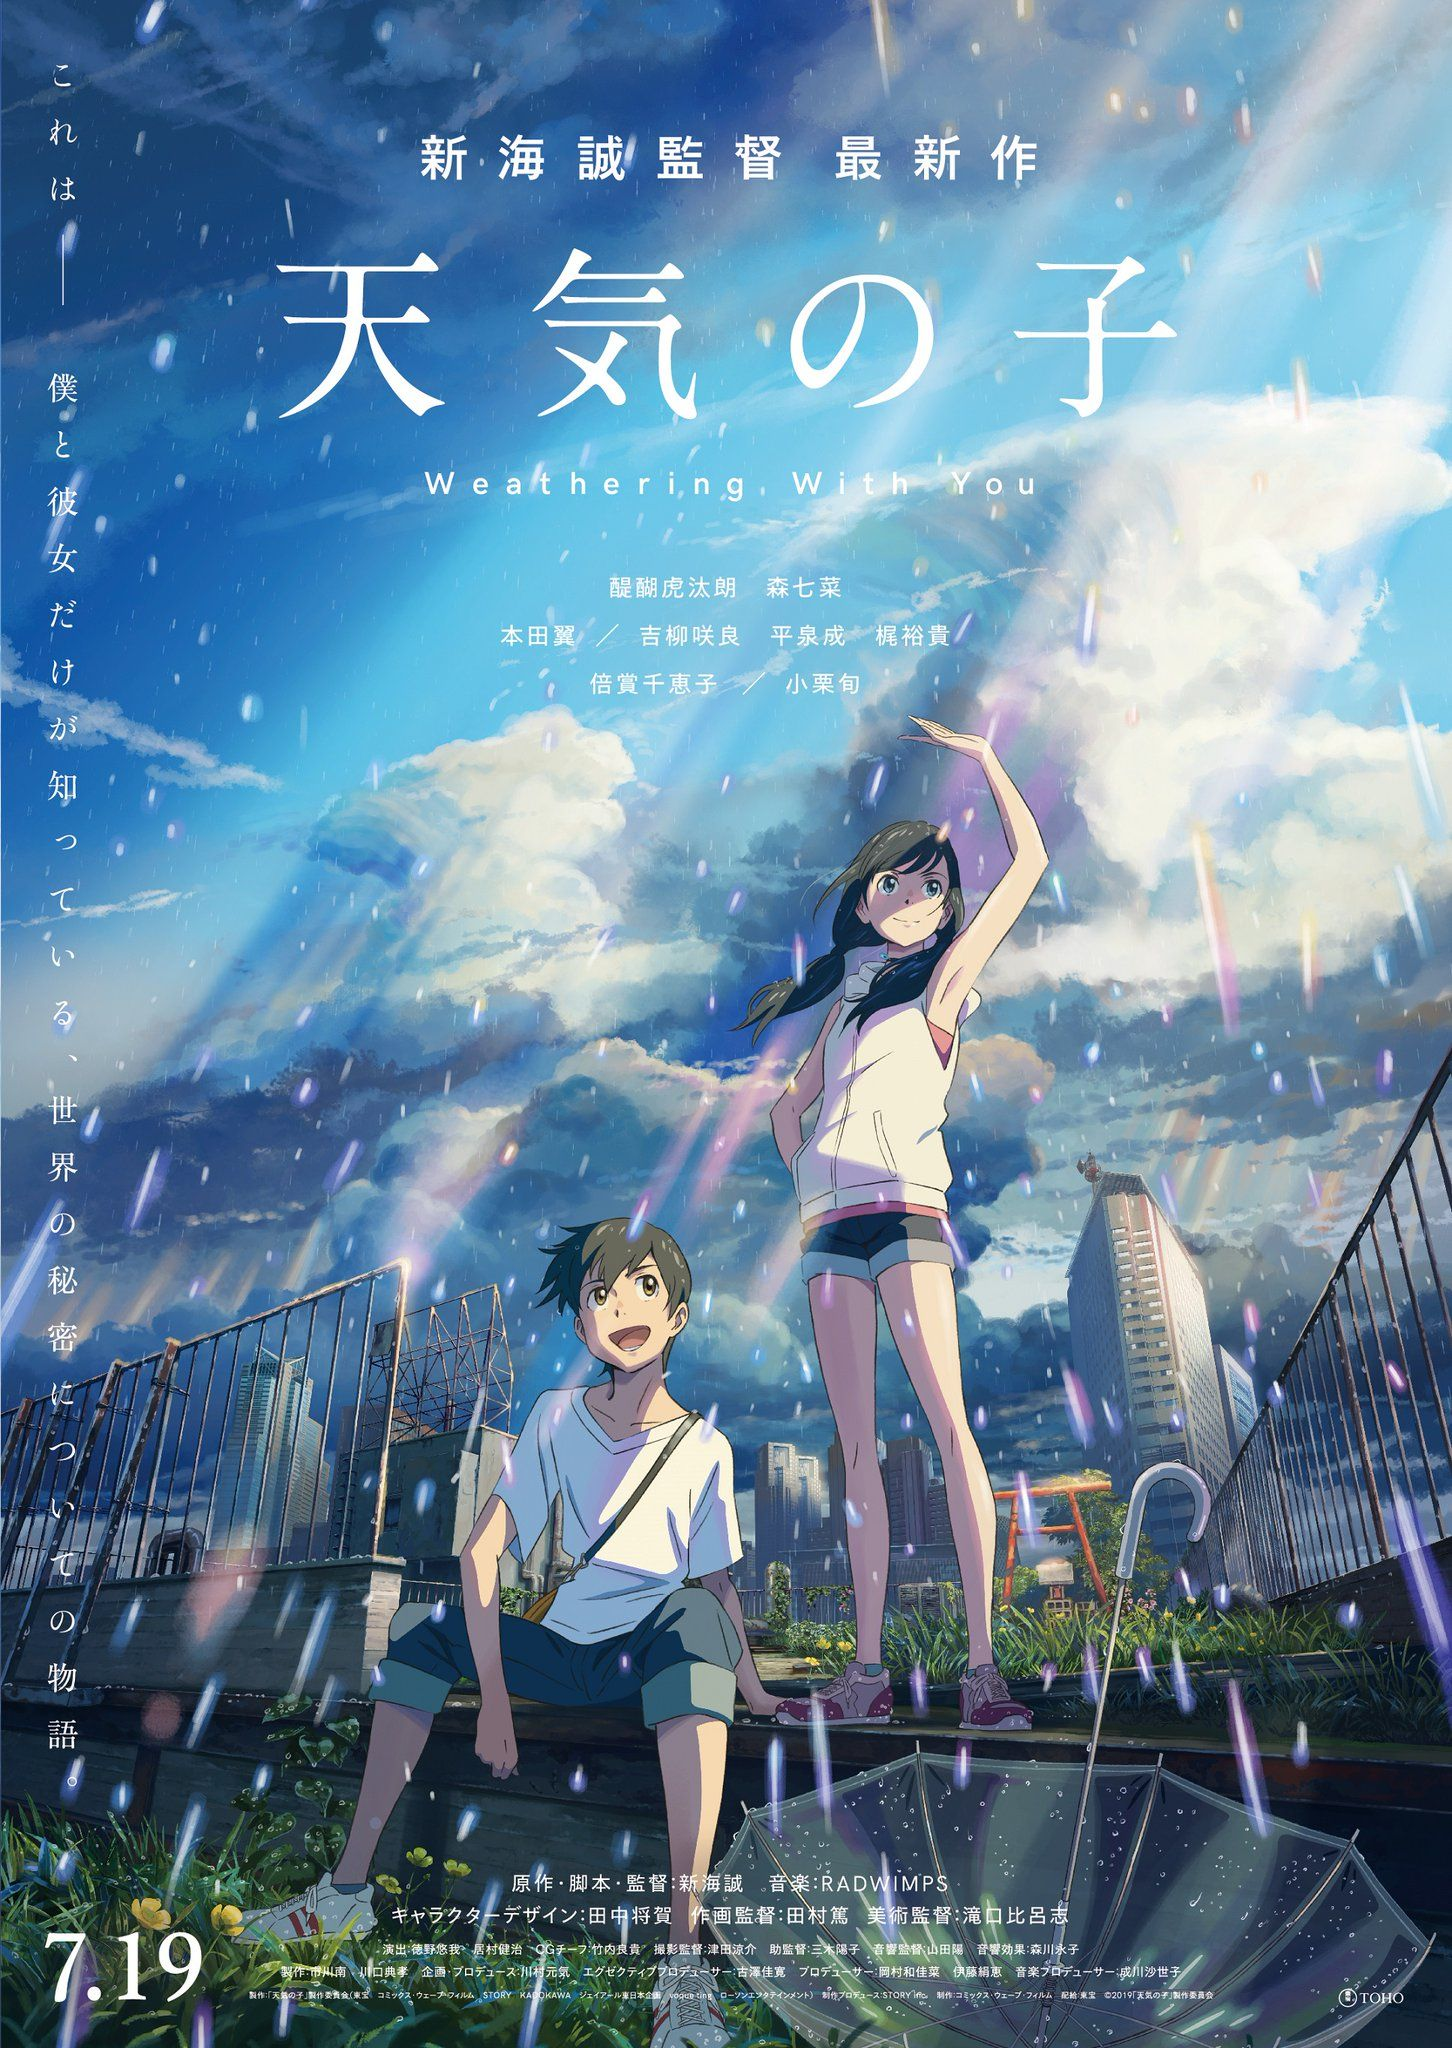 Tenki no Ko (Weathering with You) sigue numero 1 en taquilla y supera los 4 millones de yenes en 11 días